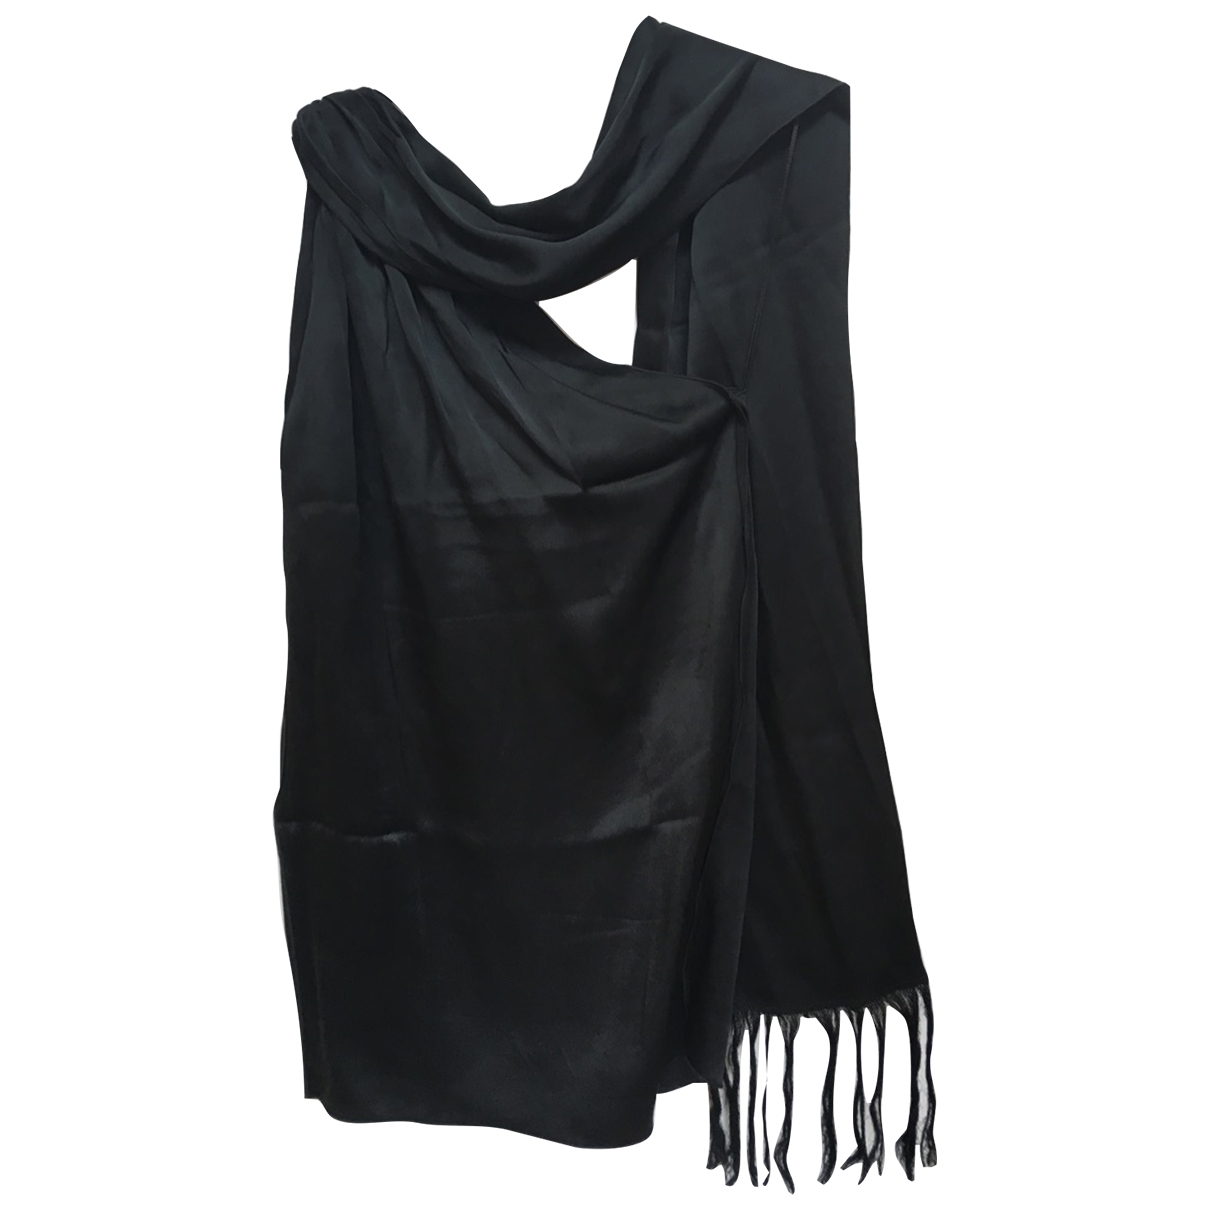 Lanvin \N Black  top for Women 36 FR